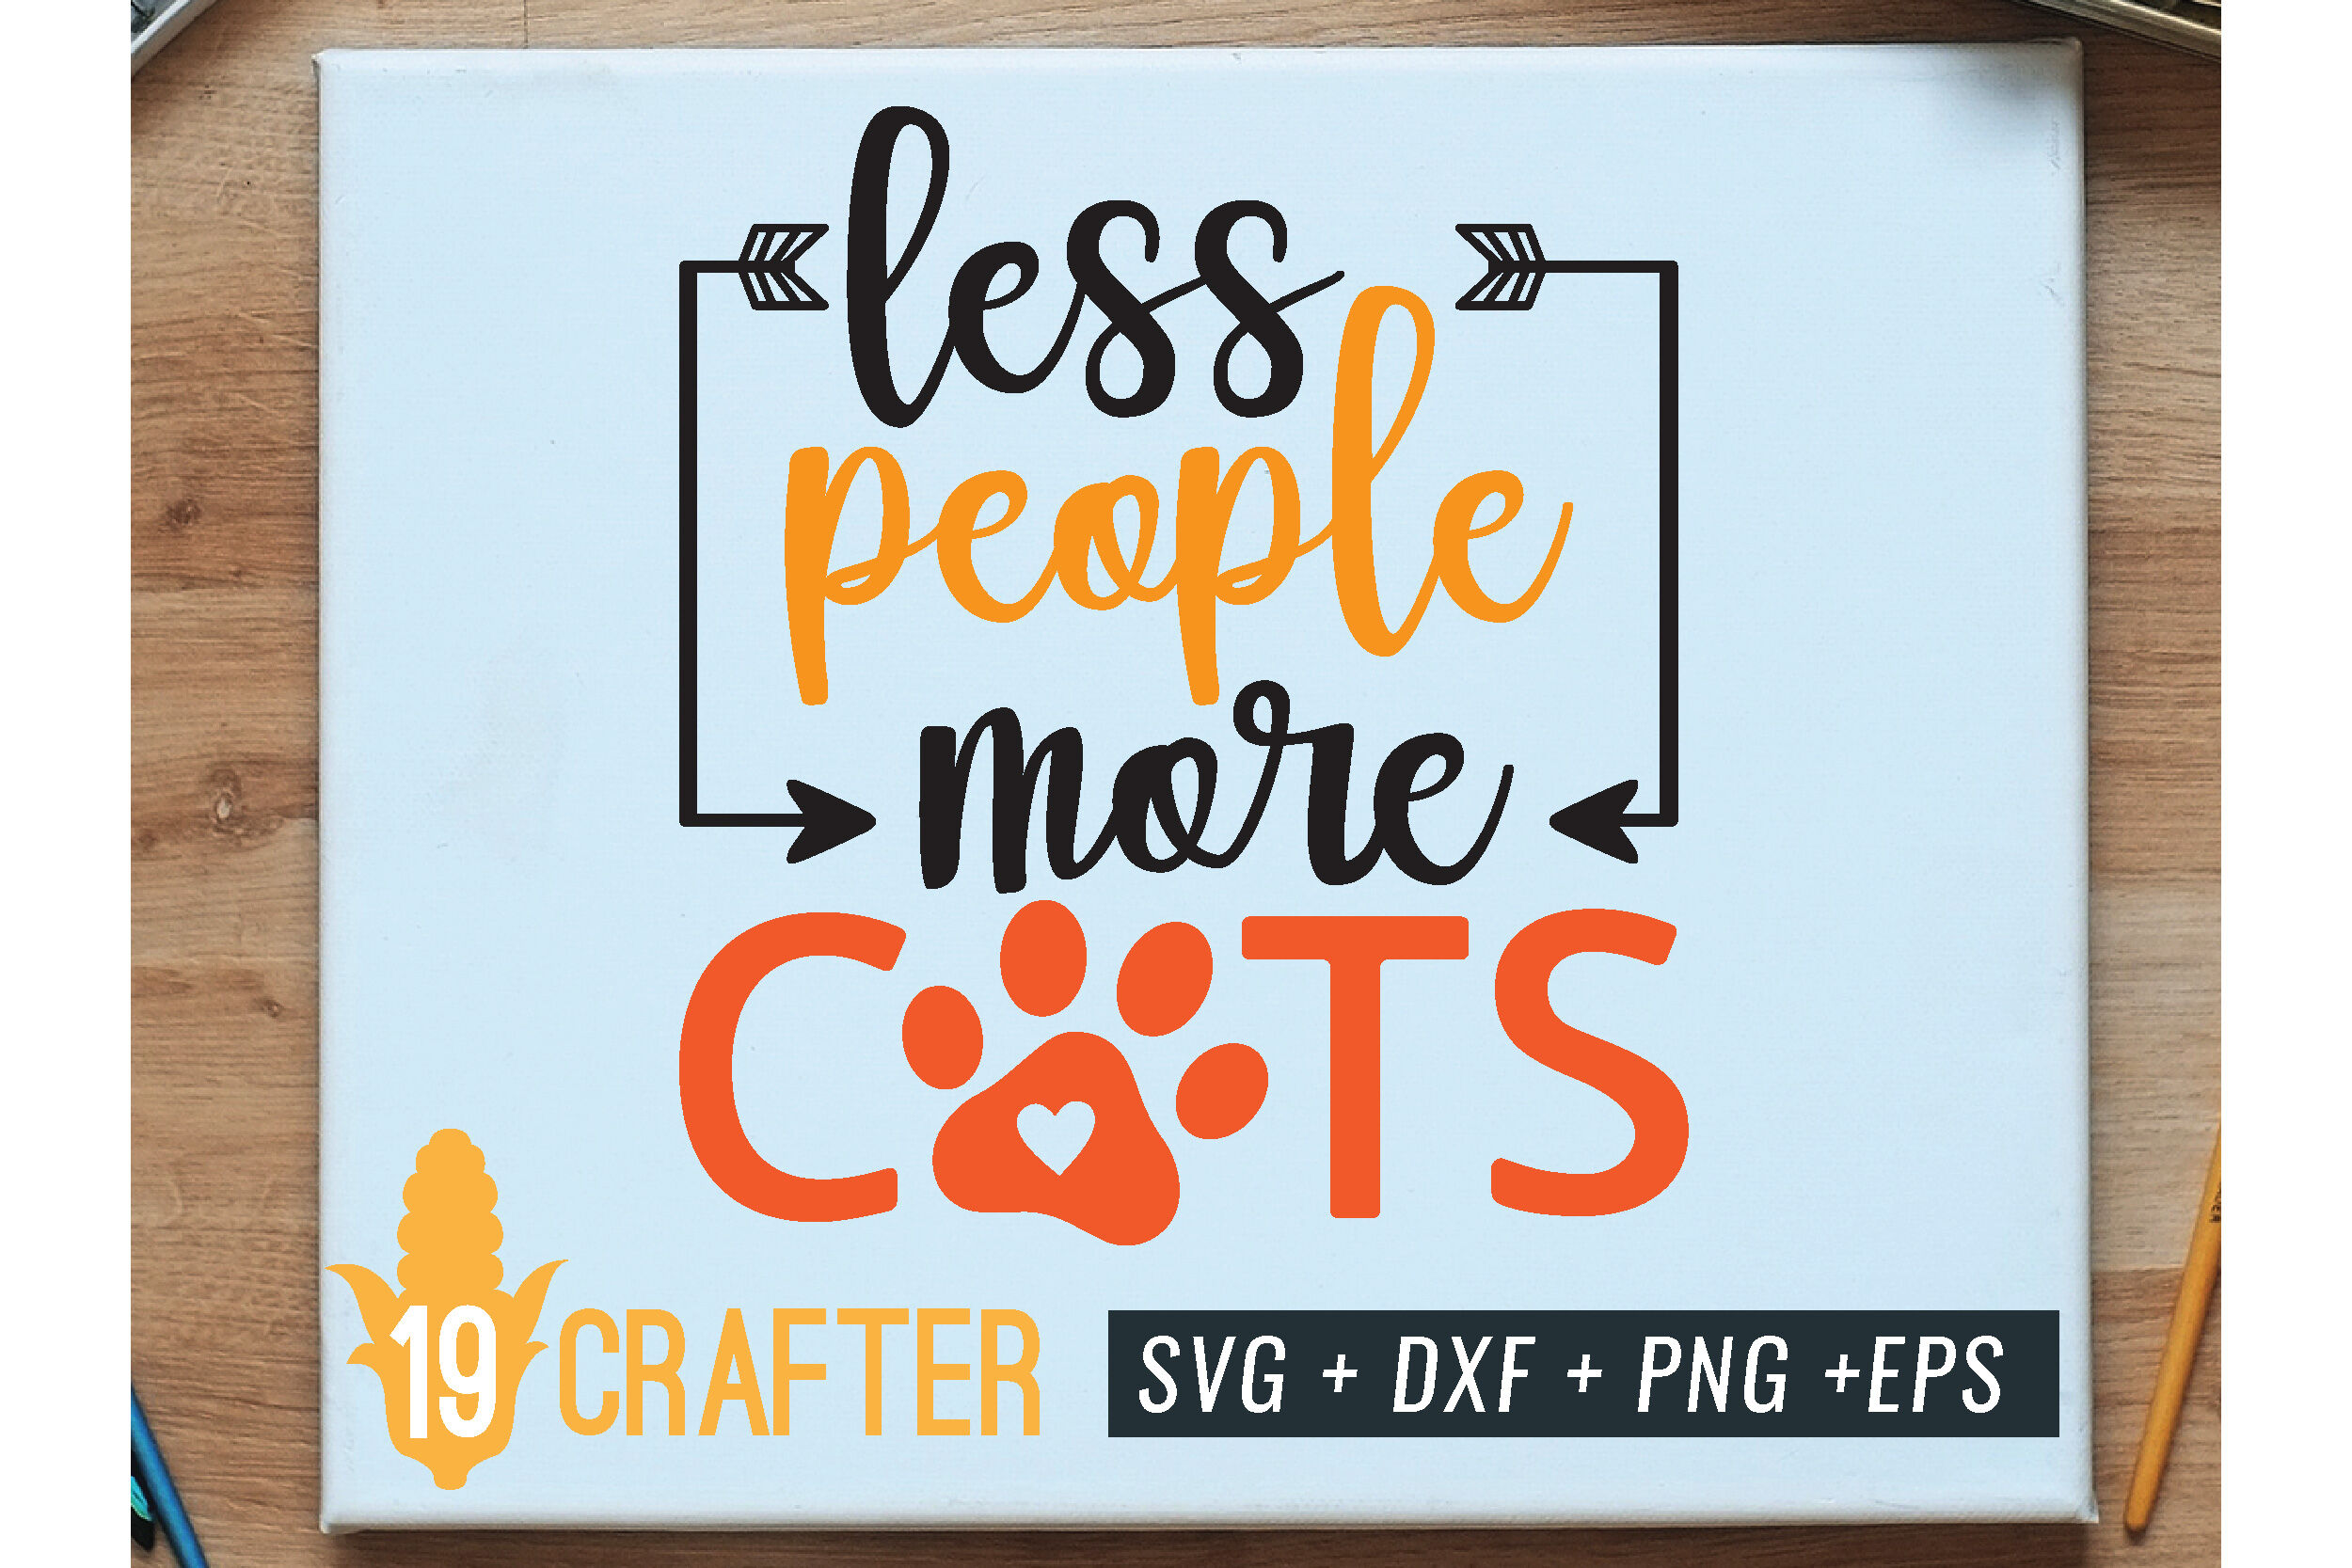 Less People More Cats Svg Cut File By Greatype19 Thehungryjpeg